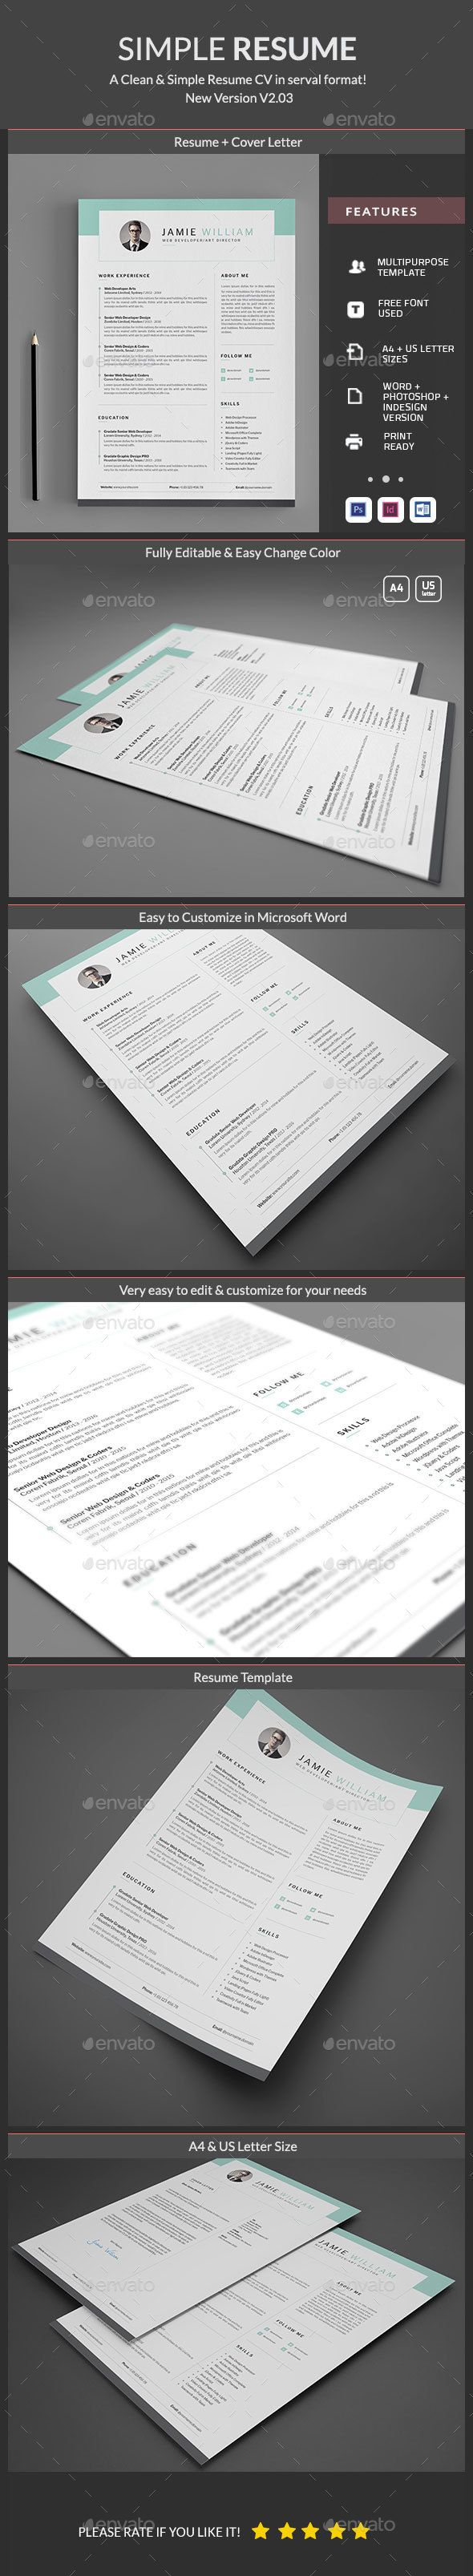 Buy Clean Resume by Elegant Design on GraphicRiver